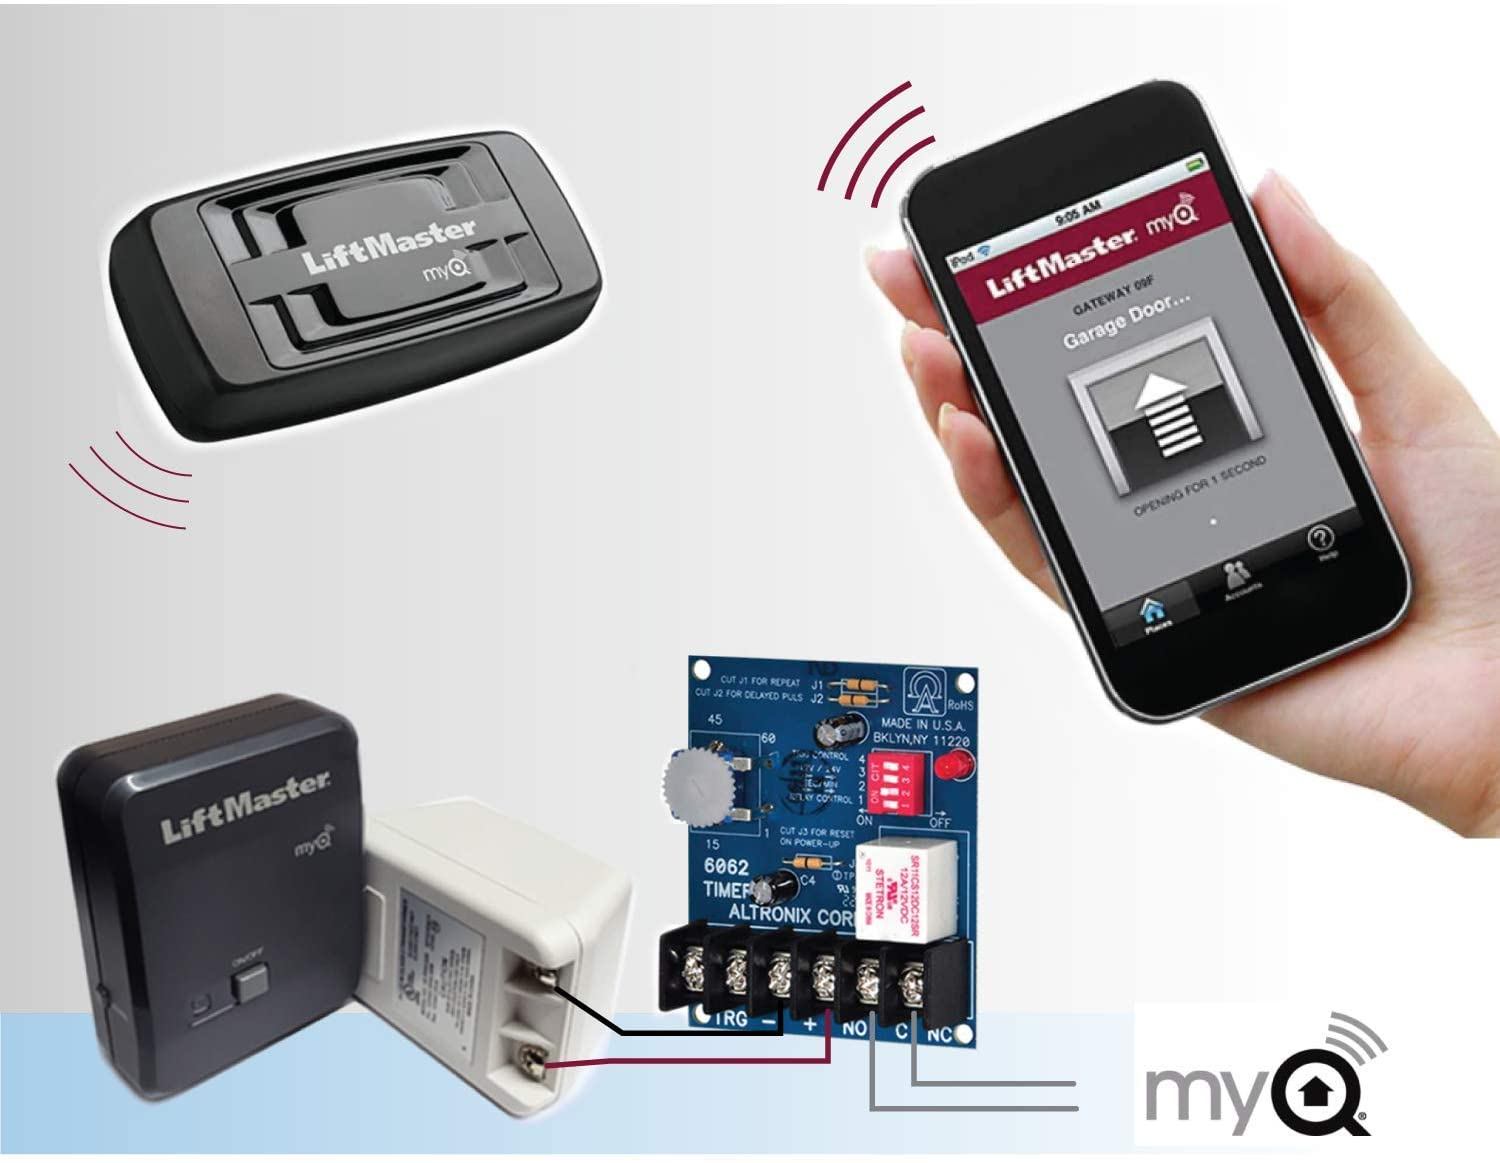 Kit For Door Opener Open And Close Your Garage By Satellite Wifi From Anywhere By Phone App Myq Smart Easy Installation